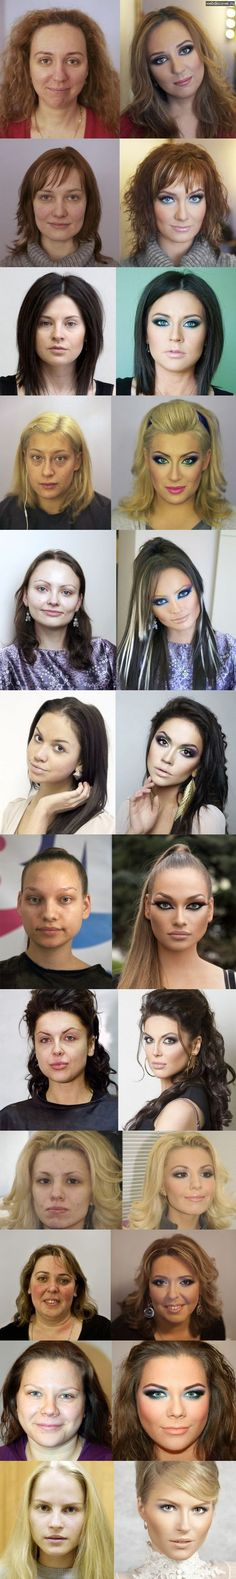 Before and After Makeup - Its amazing what the power of make up can do....